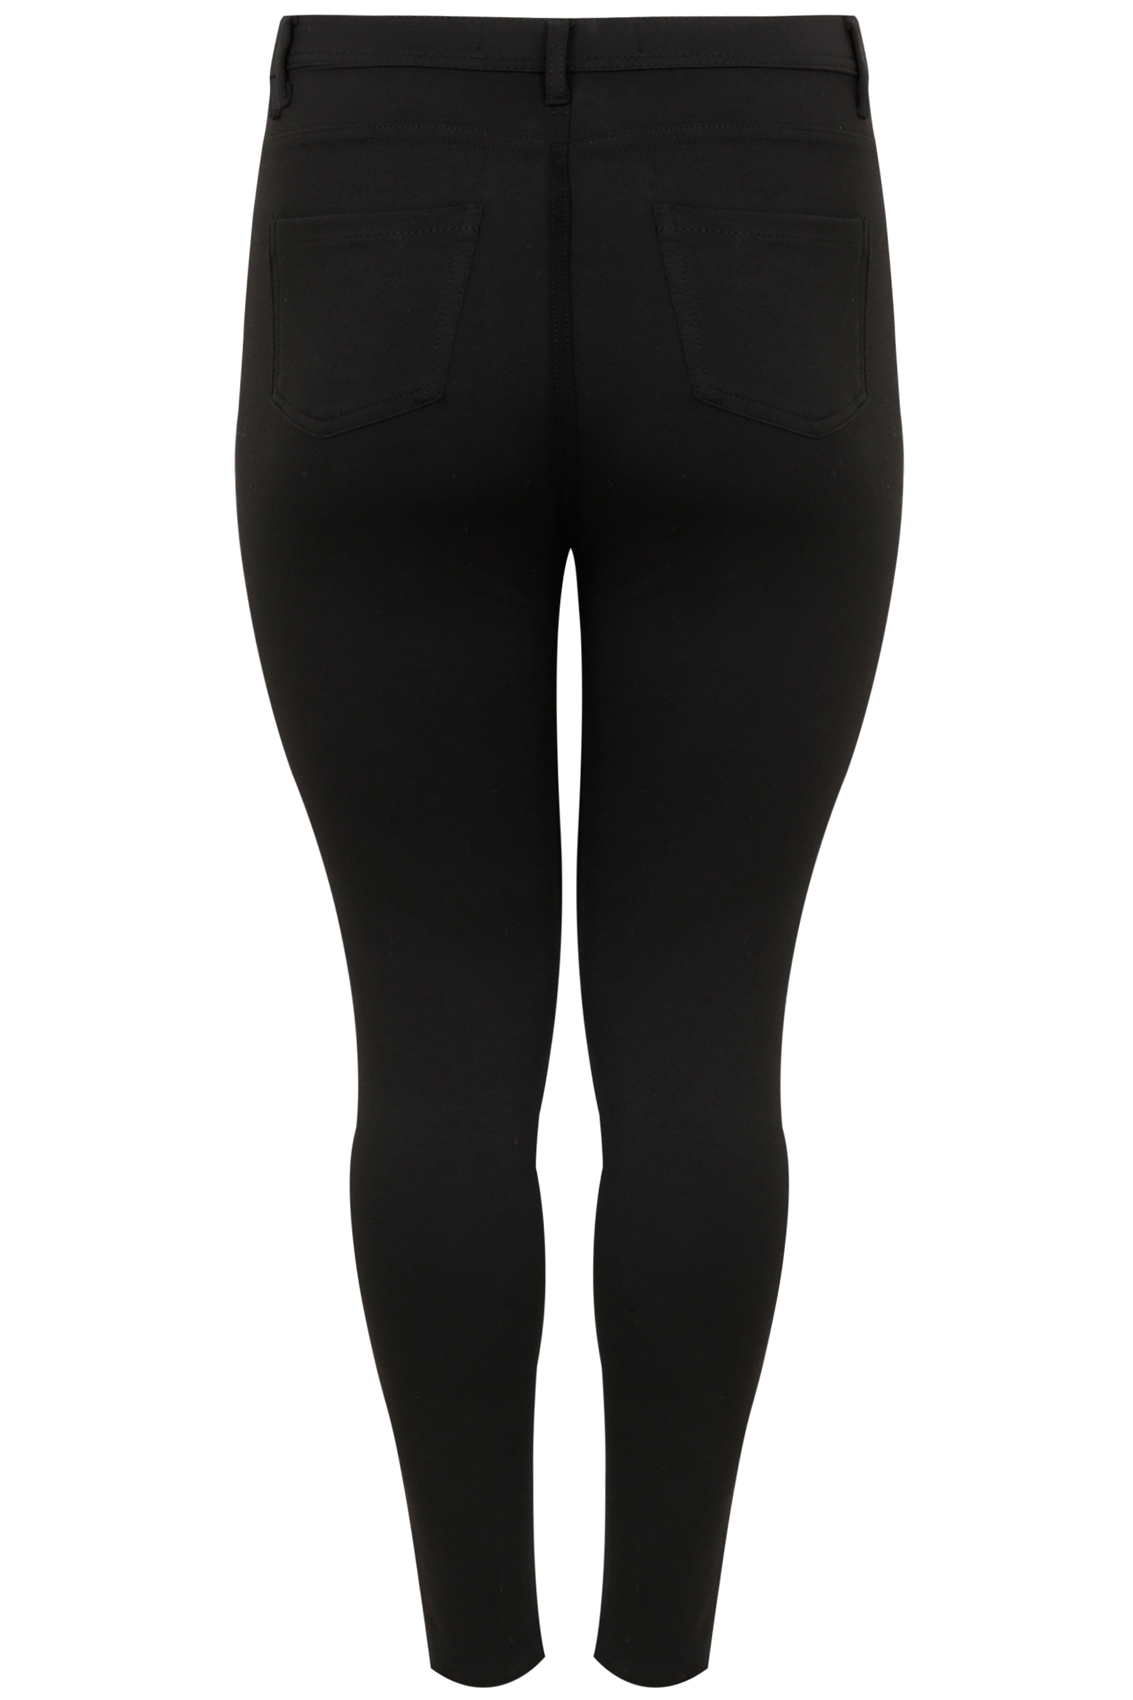 Shop Slimming Stretch Jeggings in Black and discover comfortable and stylish women's pants and trousers at an affordable price today. Order online or call: